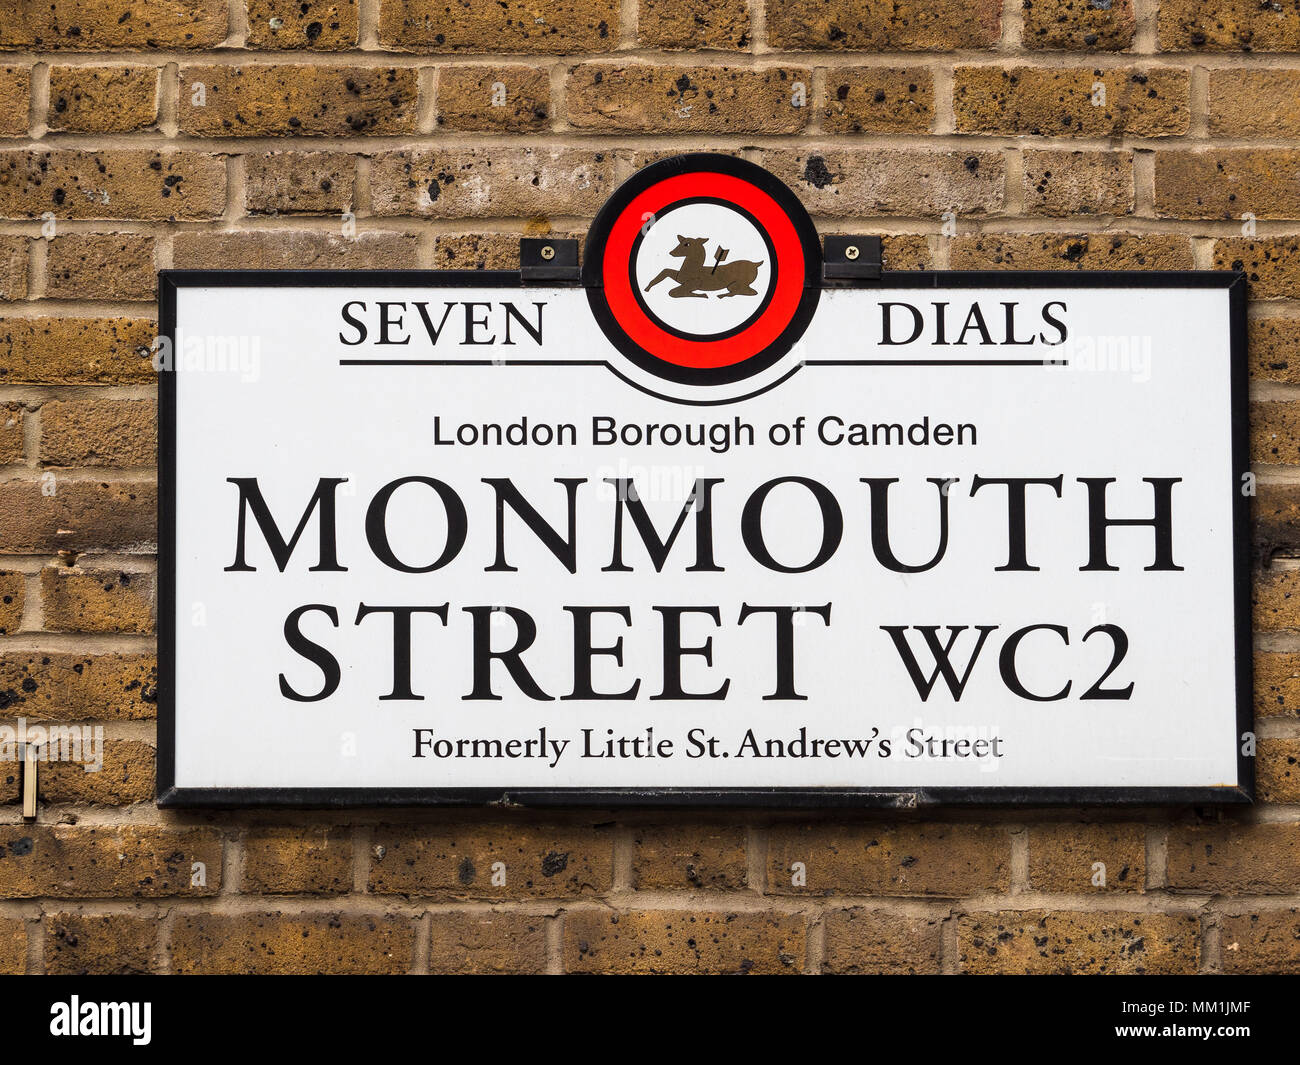 London Street Signs - Monmouth Street in London's Seven Dials district - Stock Image